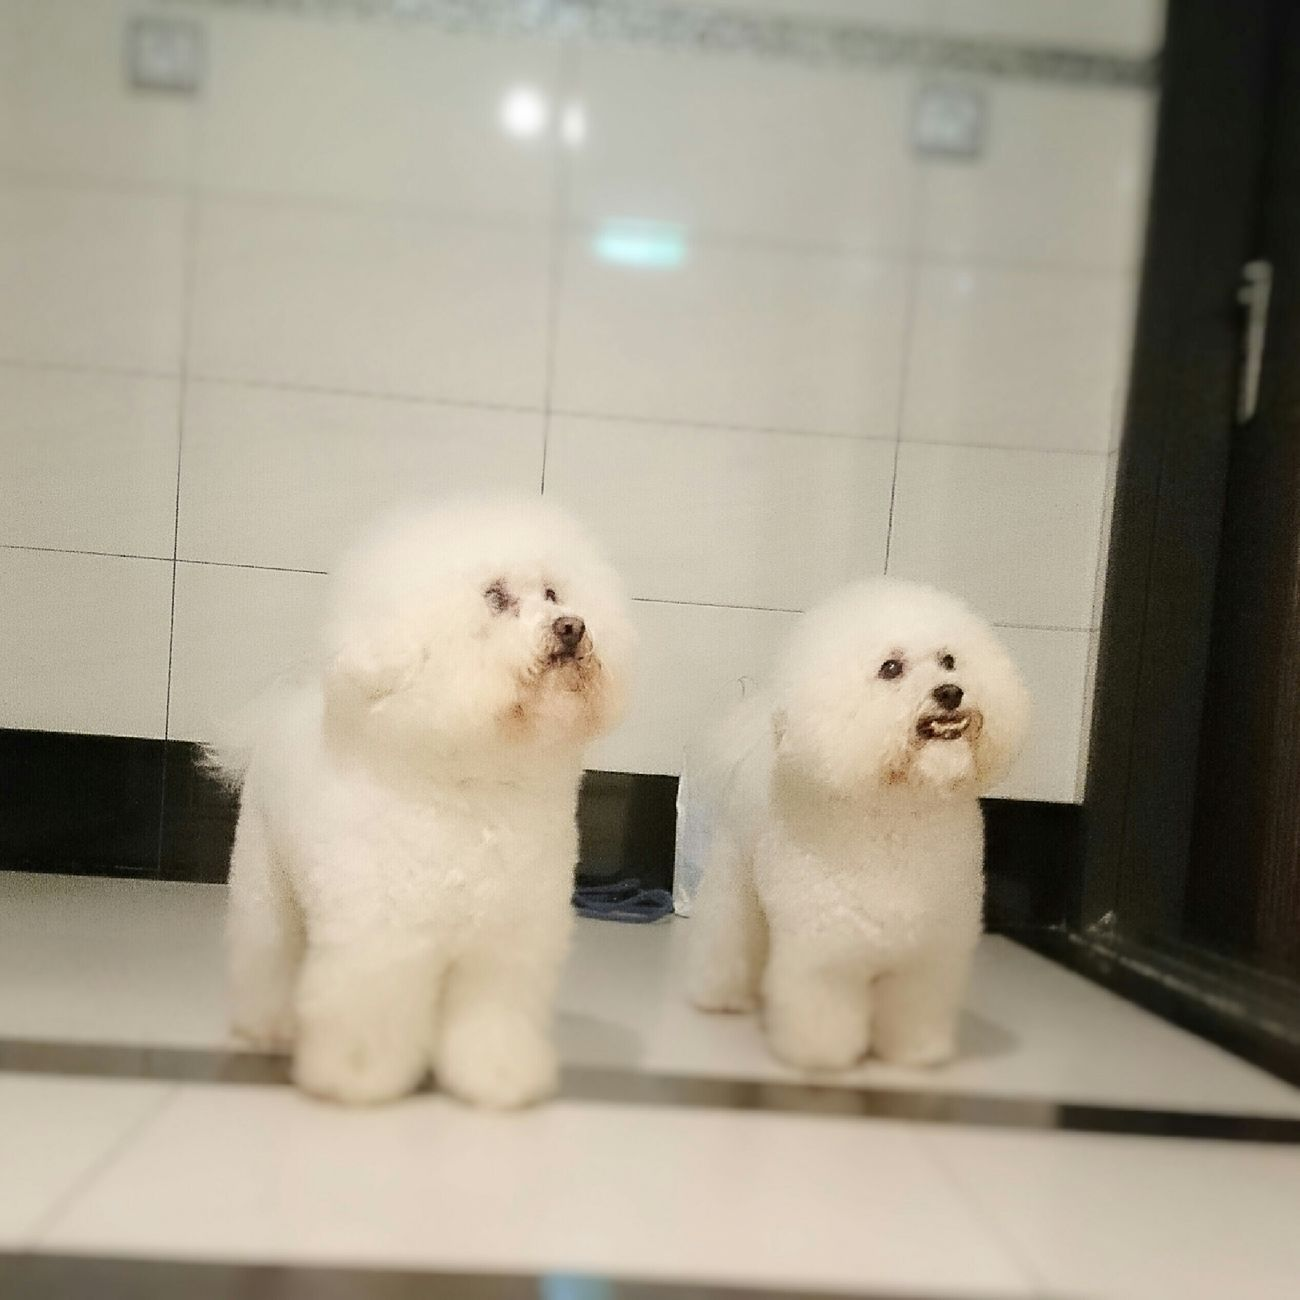 Waiting for the lift. 比熊 比熊犬 寵物 Bichon Bichonfrise Puppy Dog Pet Fluffy ビションフリーゼ